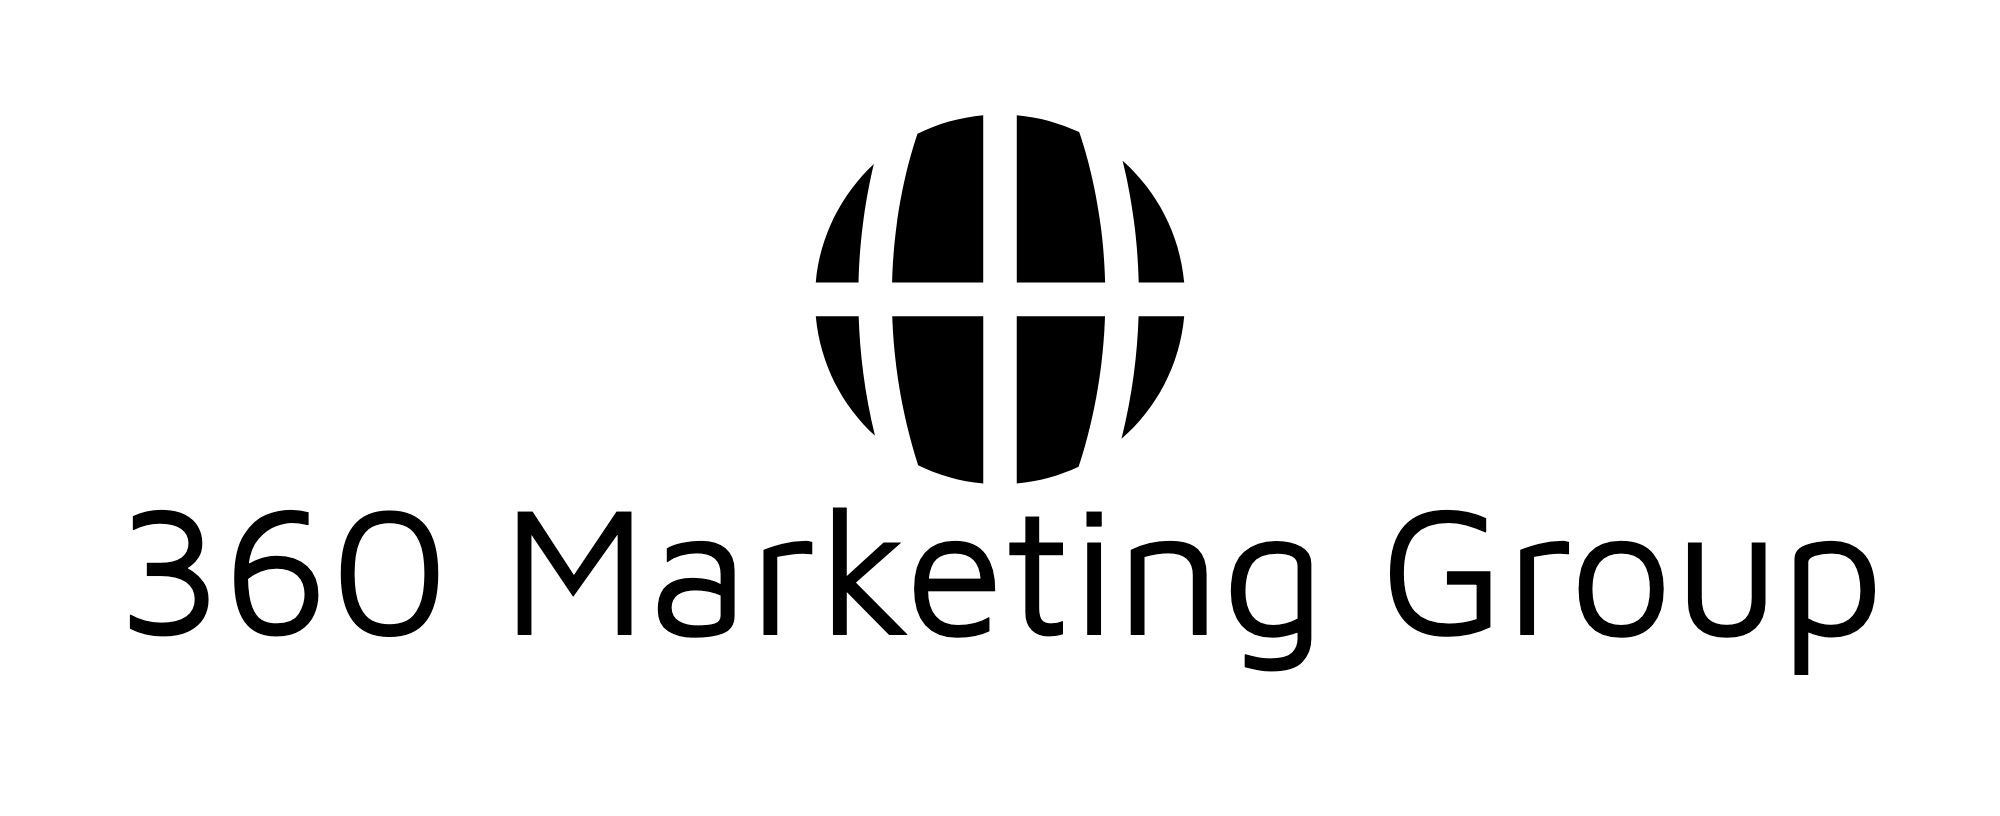 360 Marketing Group